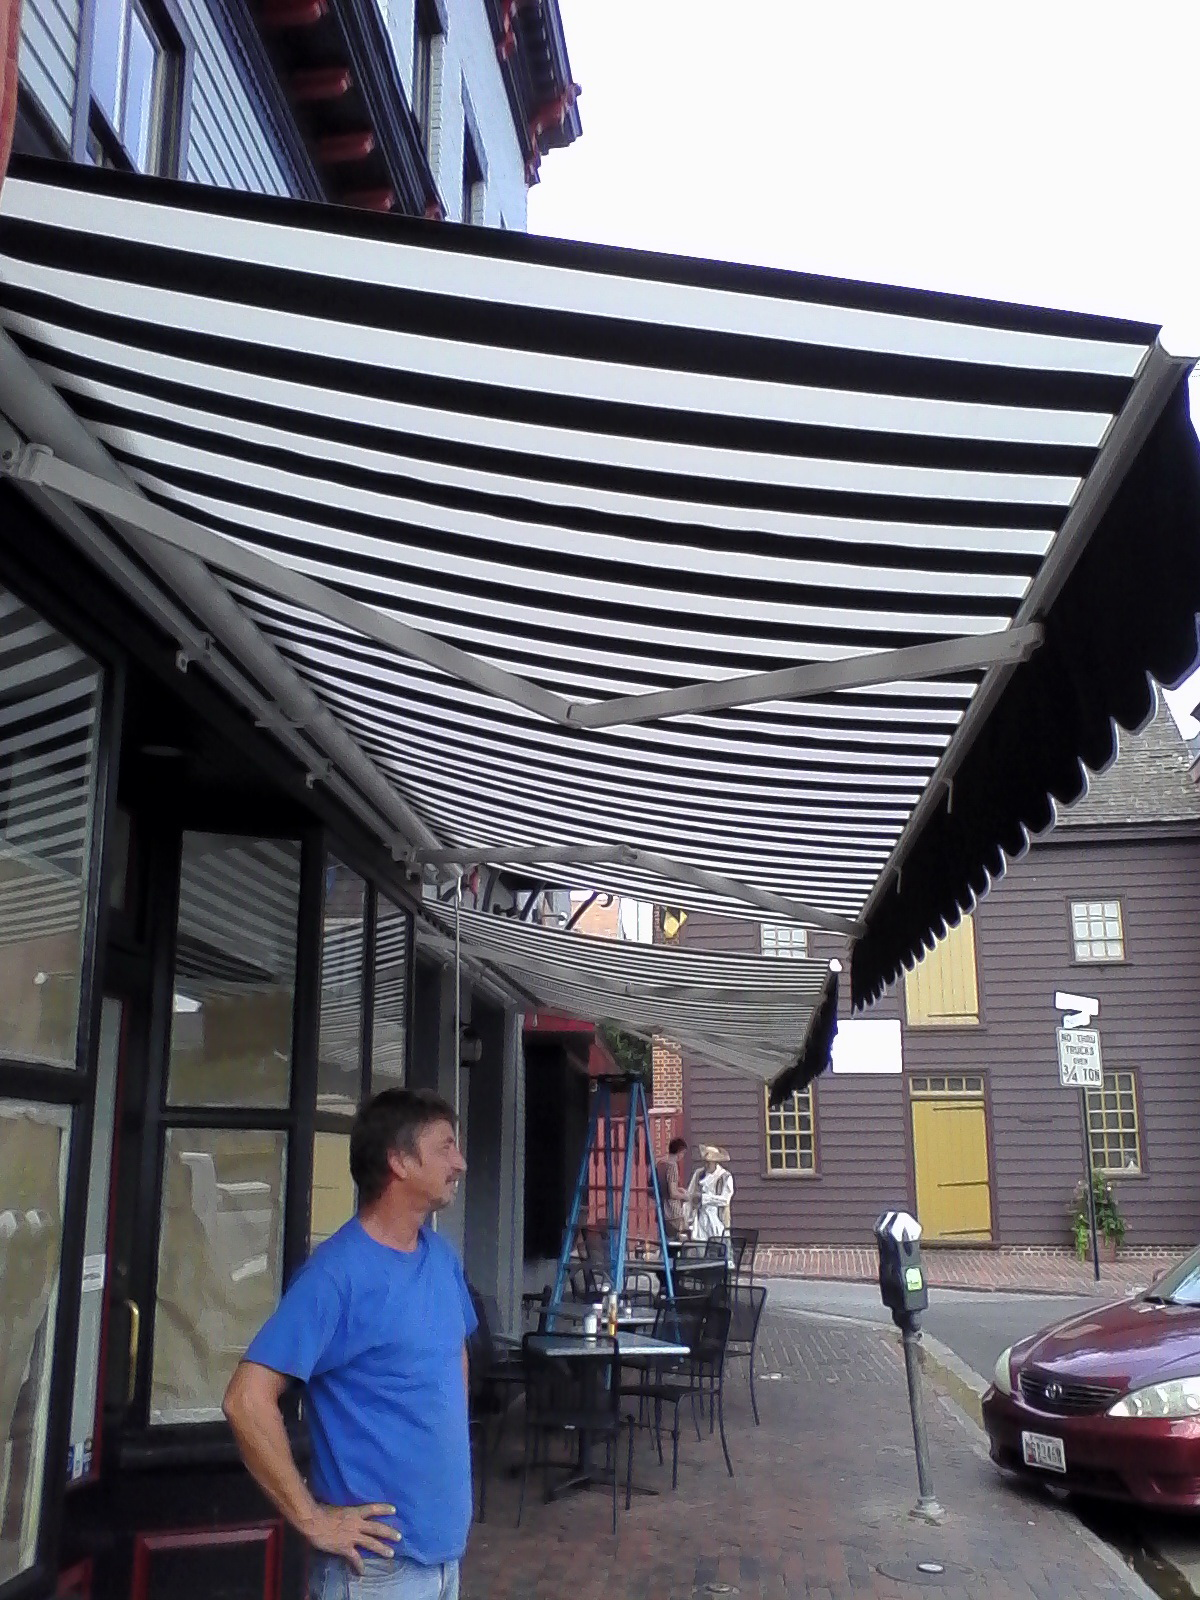 Commercial-Retractable-Awning-Hoffman-Awning